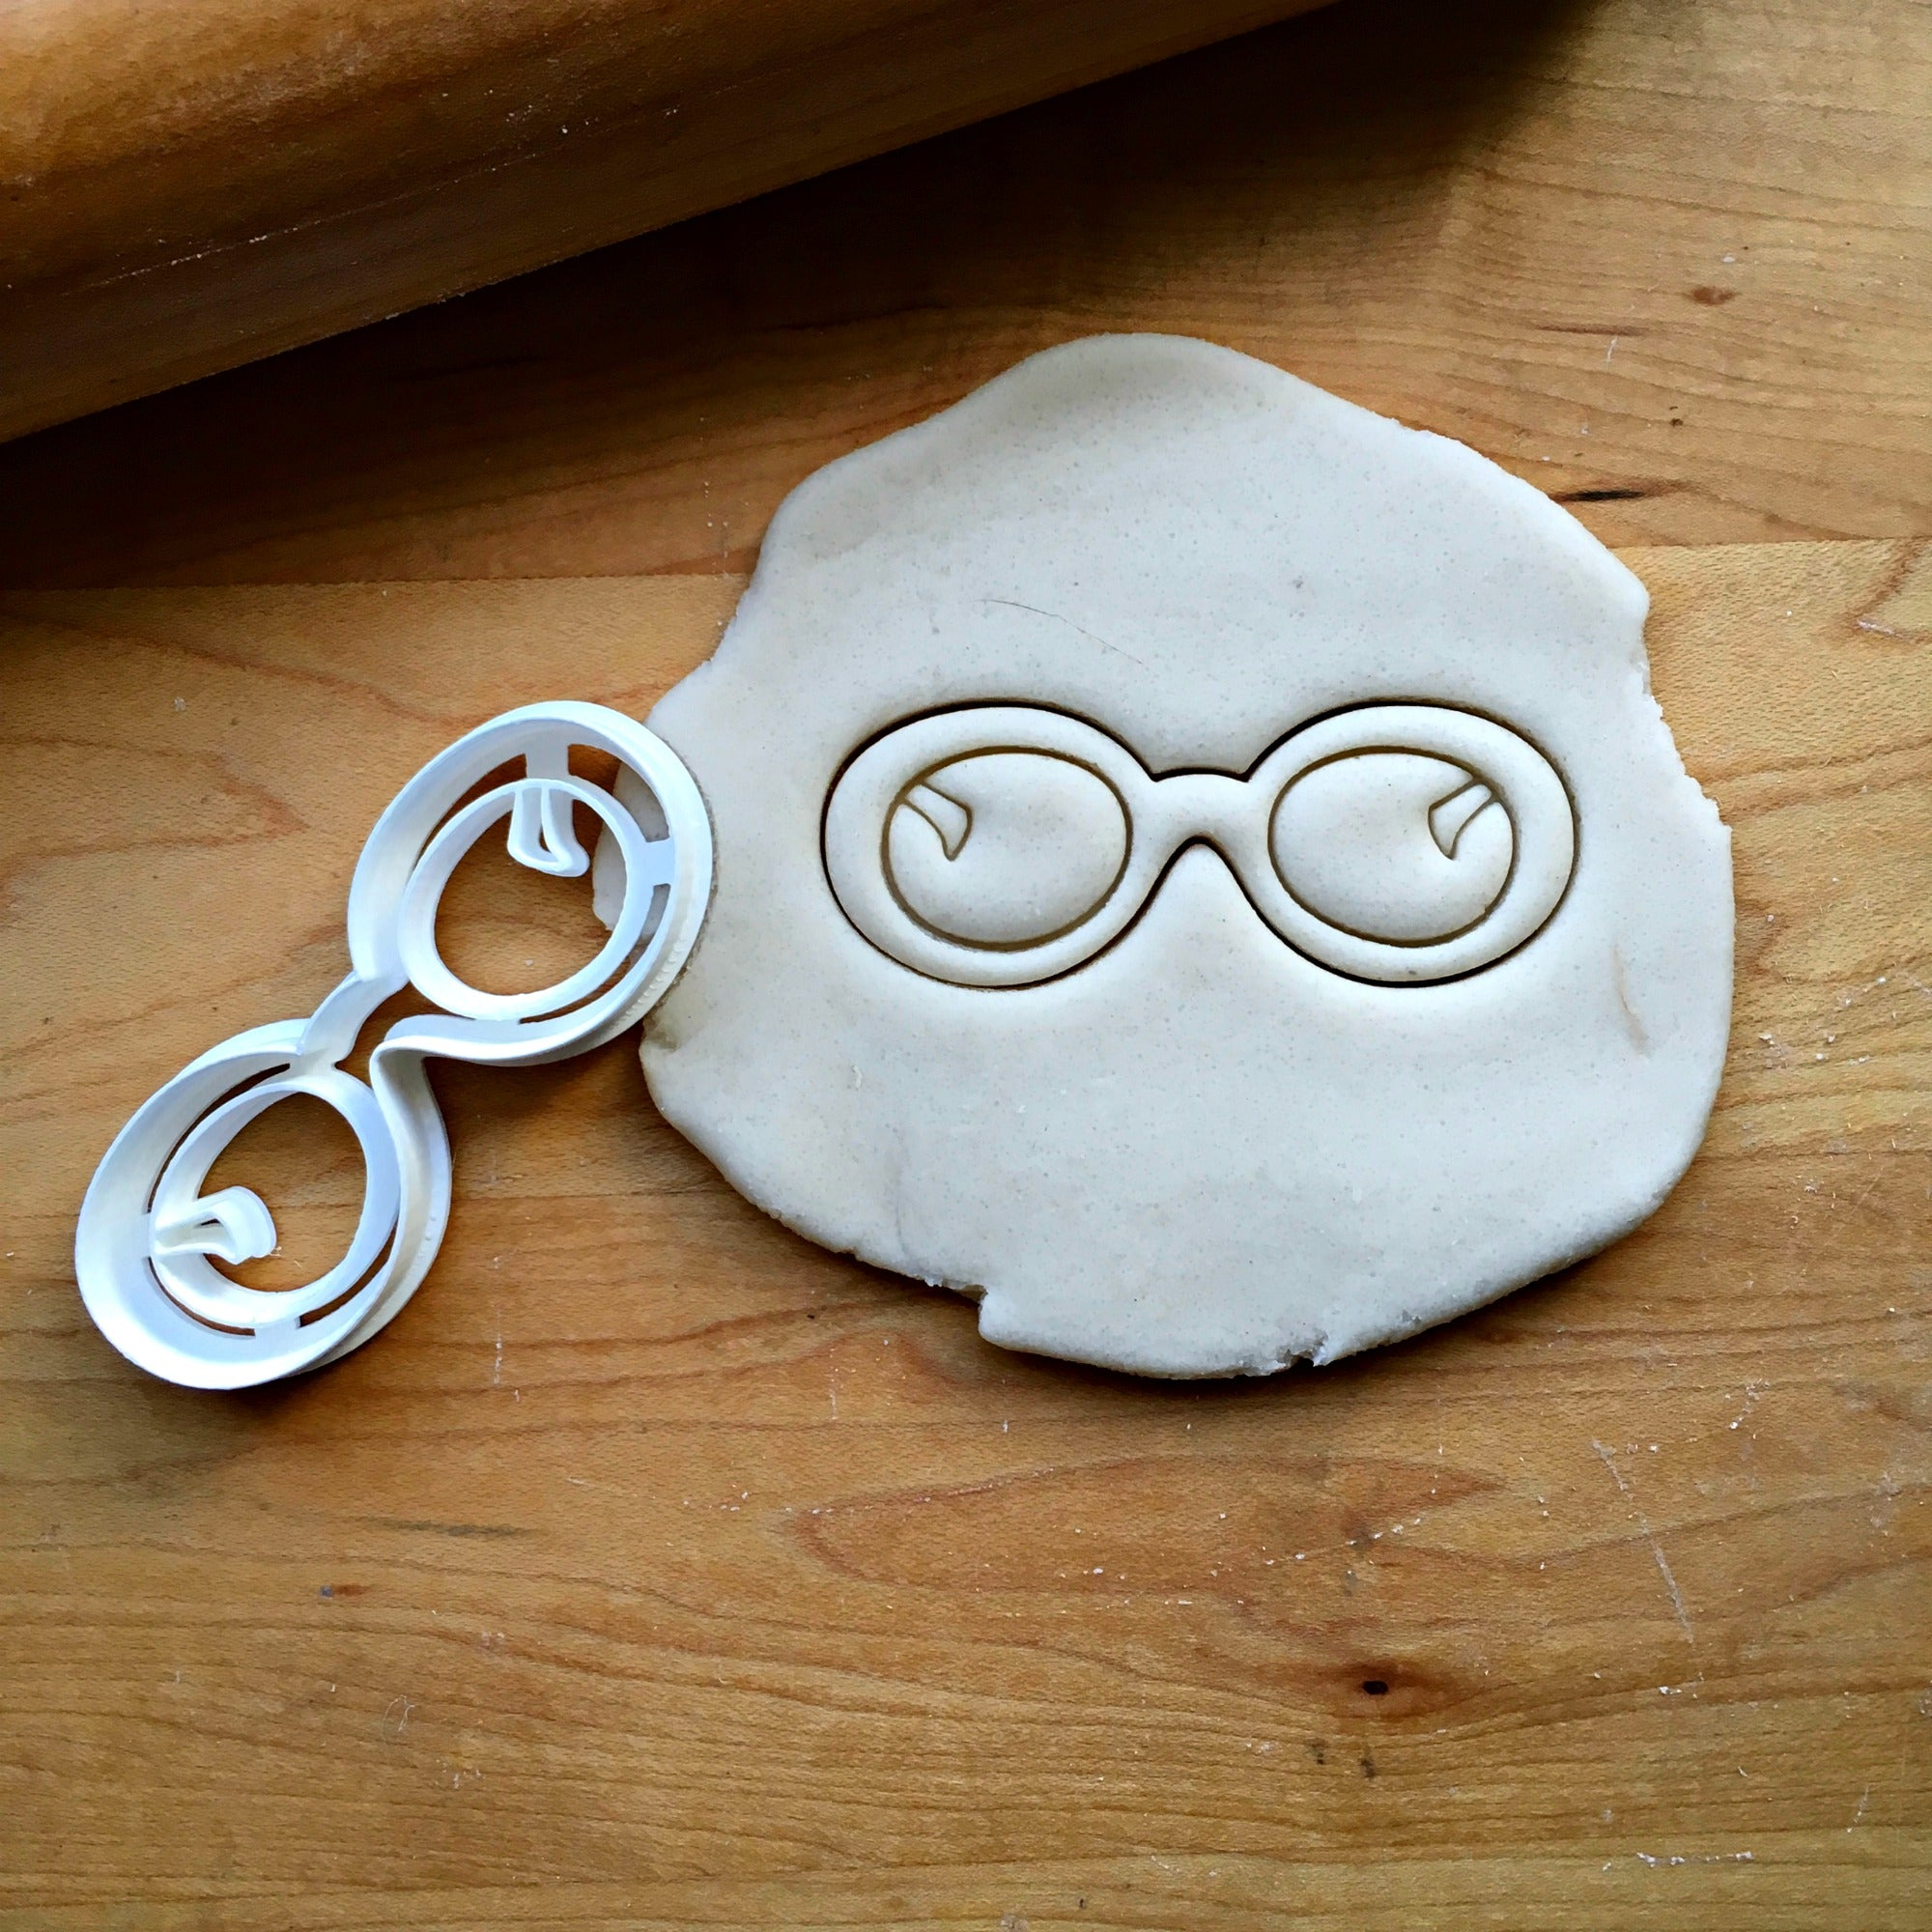 Rounded Glasses Cookie Cutter/Dishwasher Safe